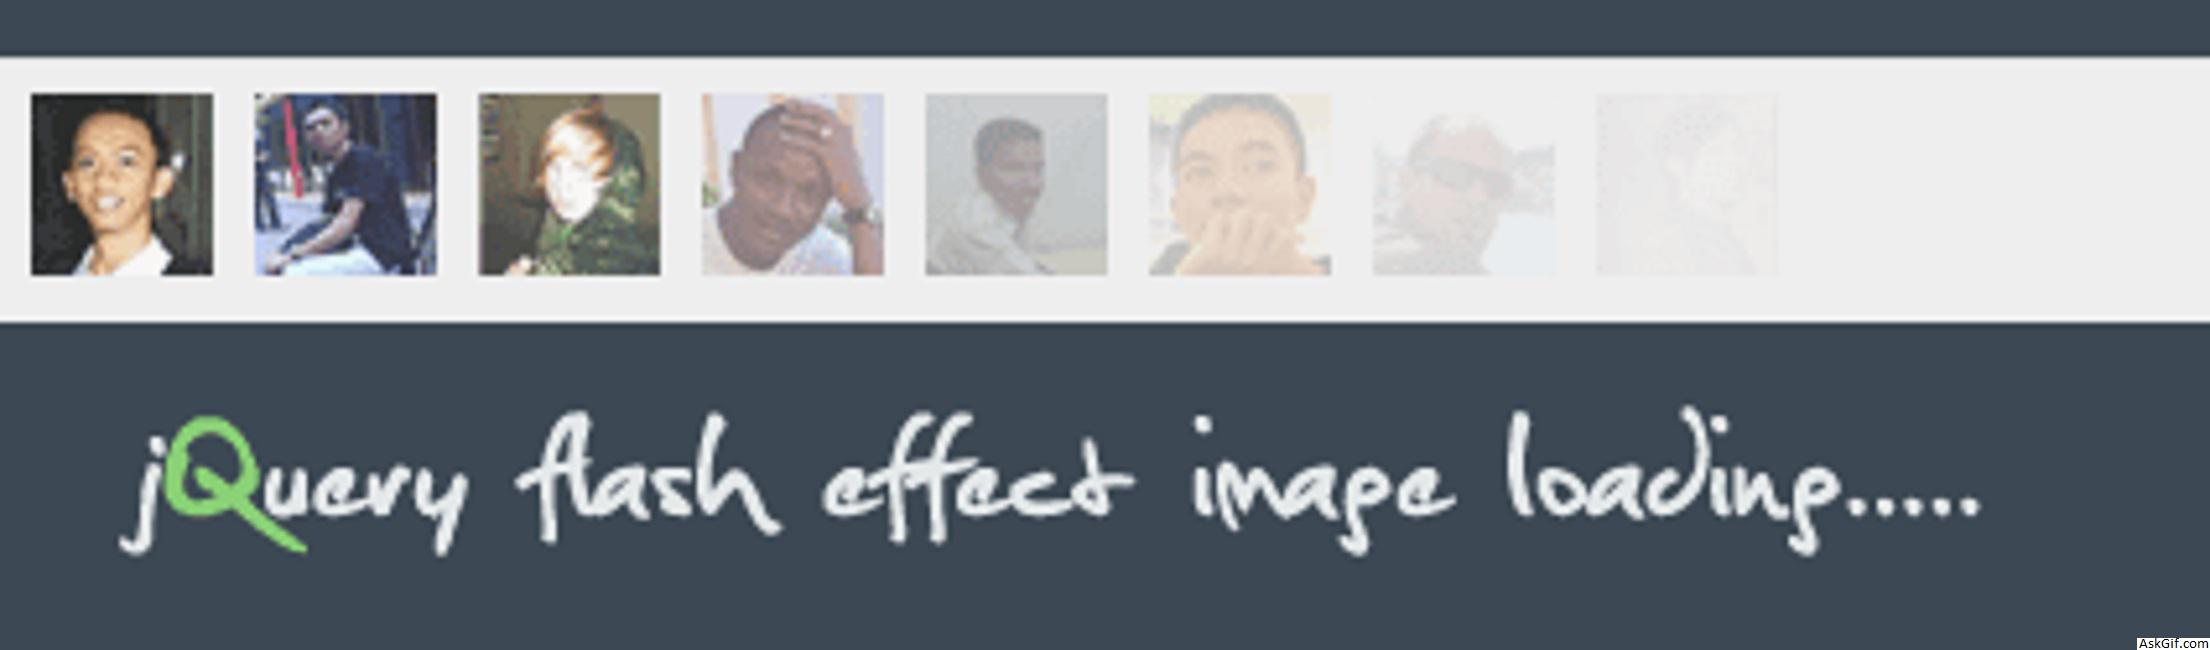 AddFlash Effect to Image Loading using Jquery.